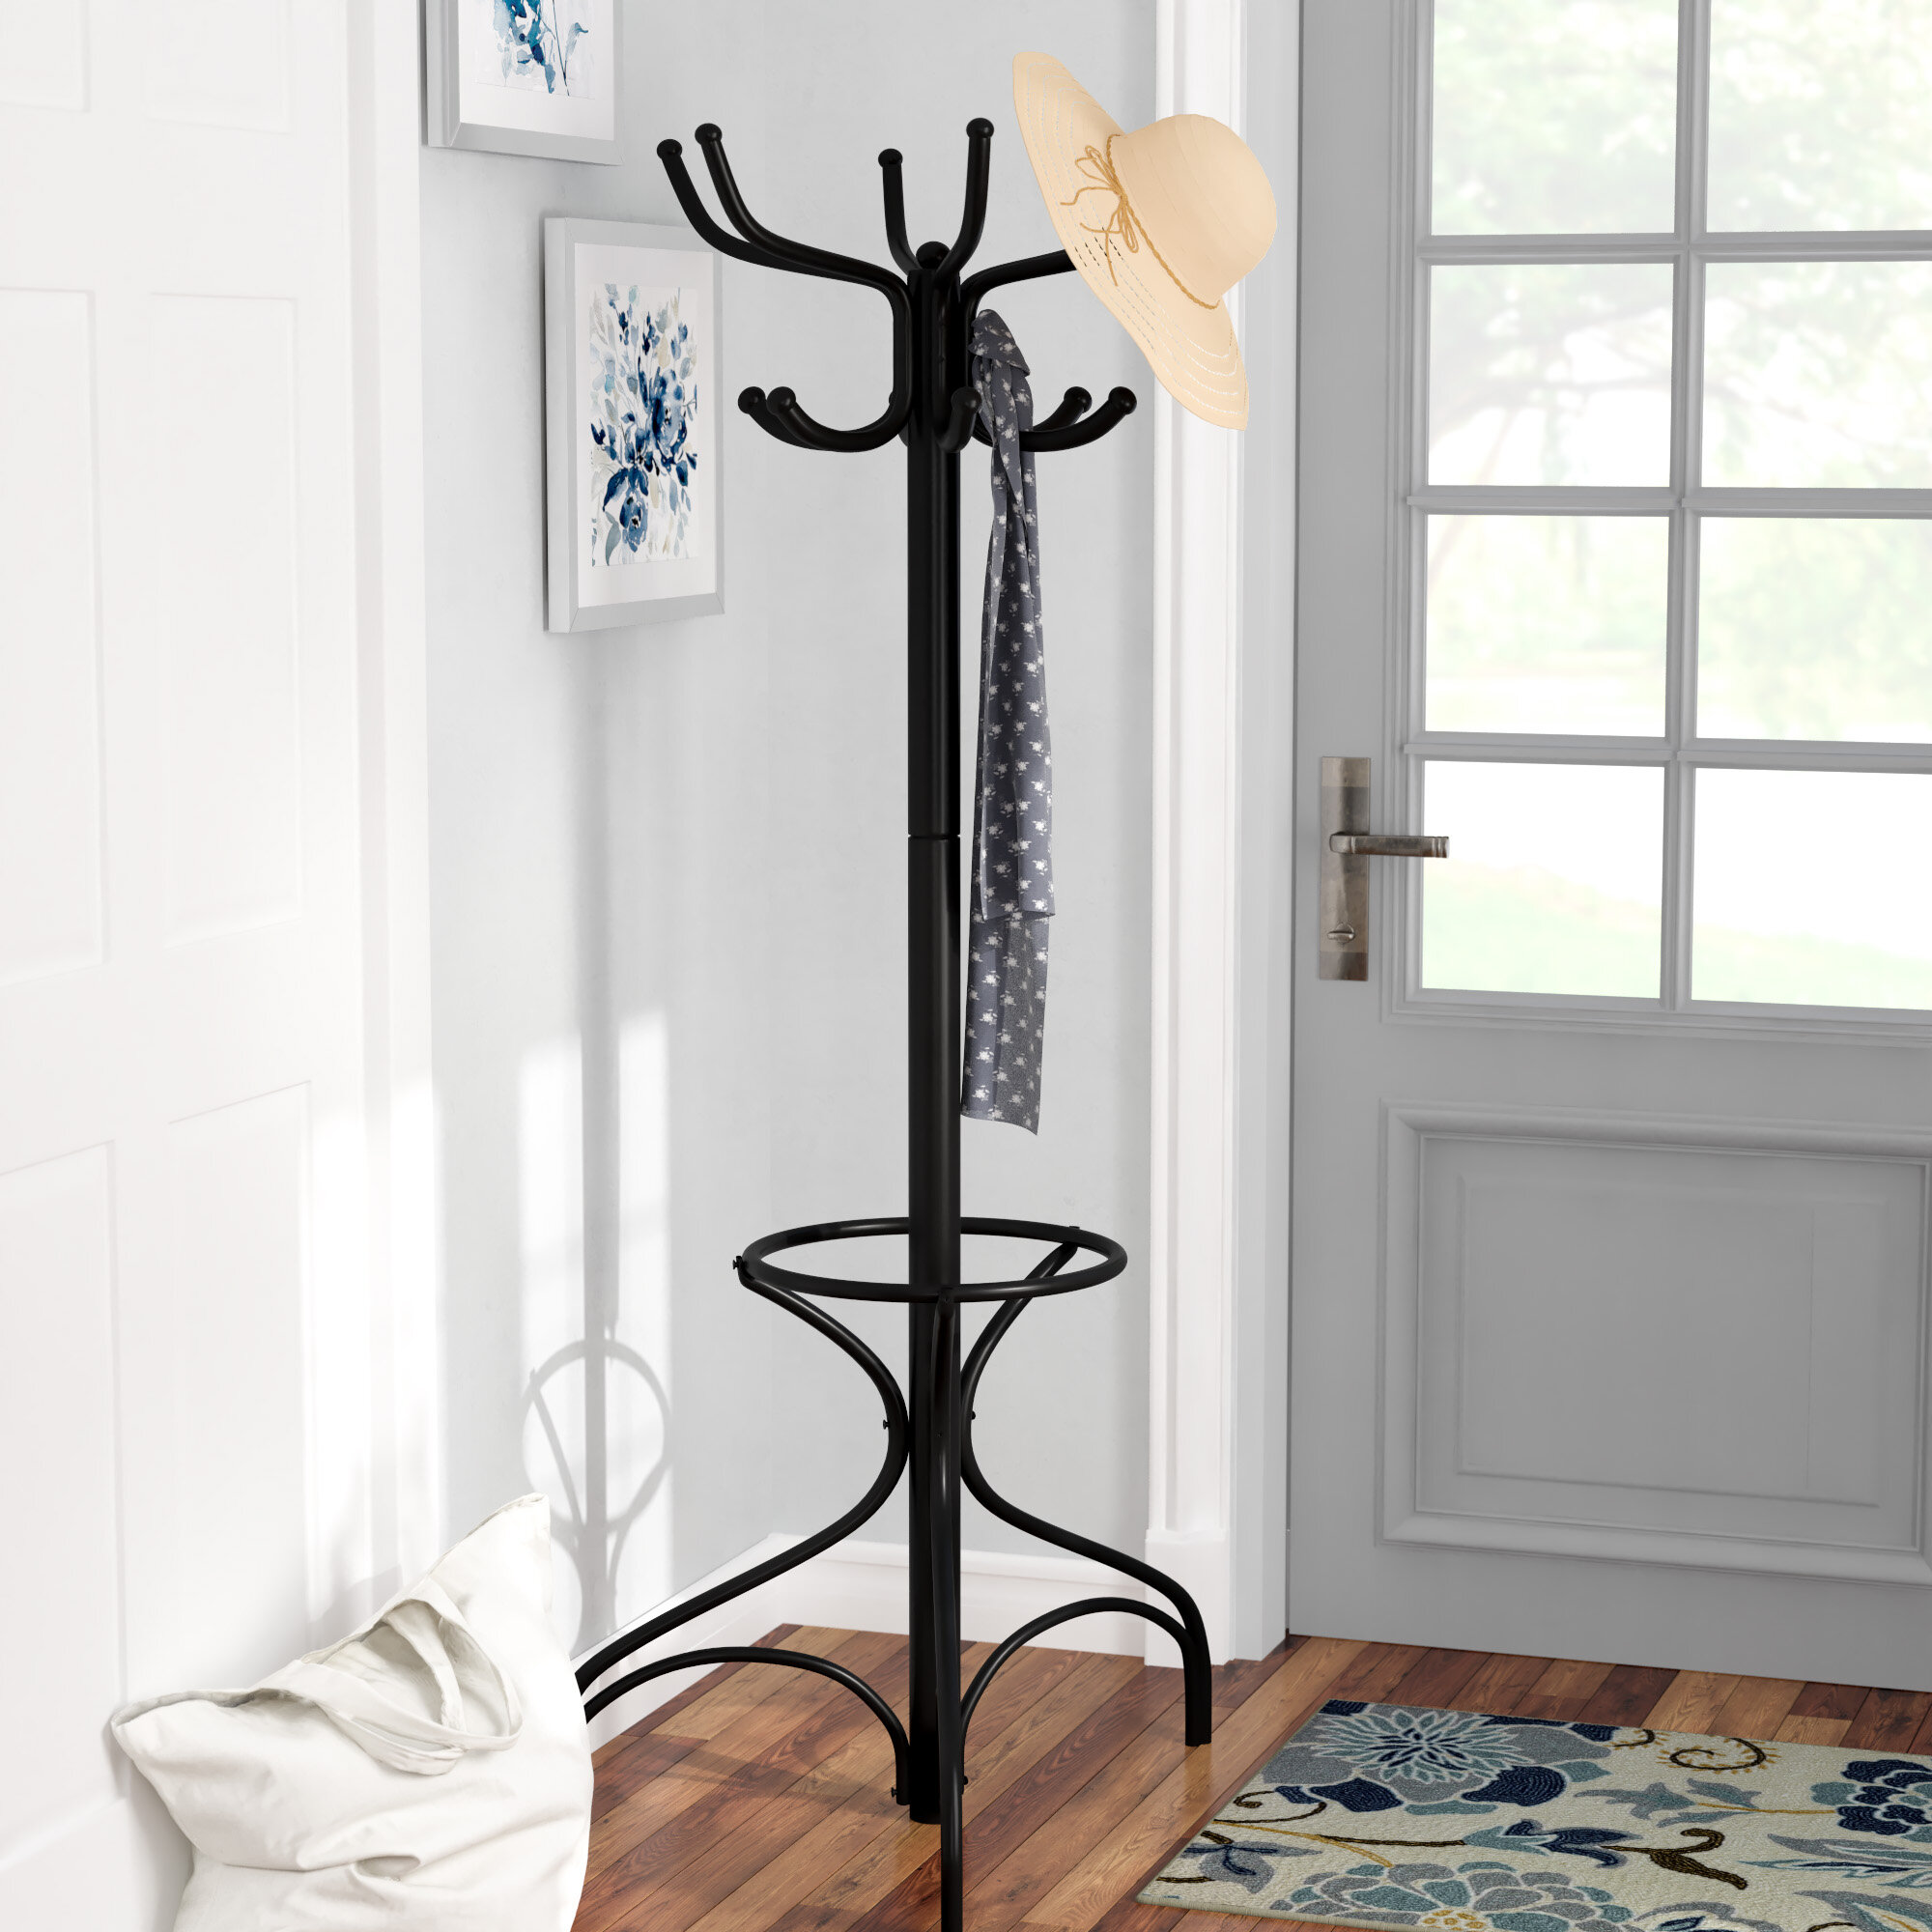 Andover Mills™ Metal Coat Rack with Umbrella Holder & Reviews